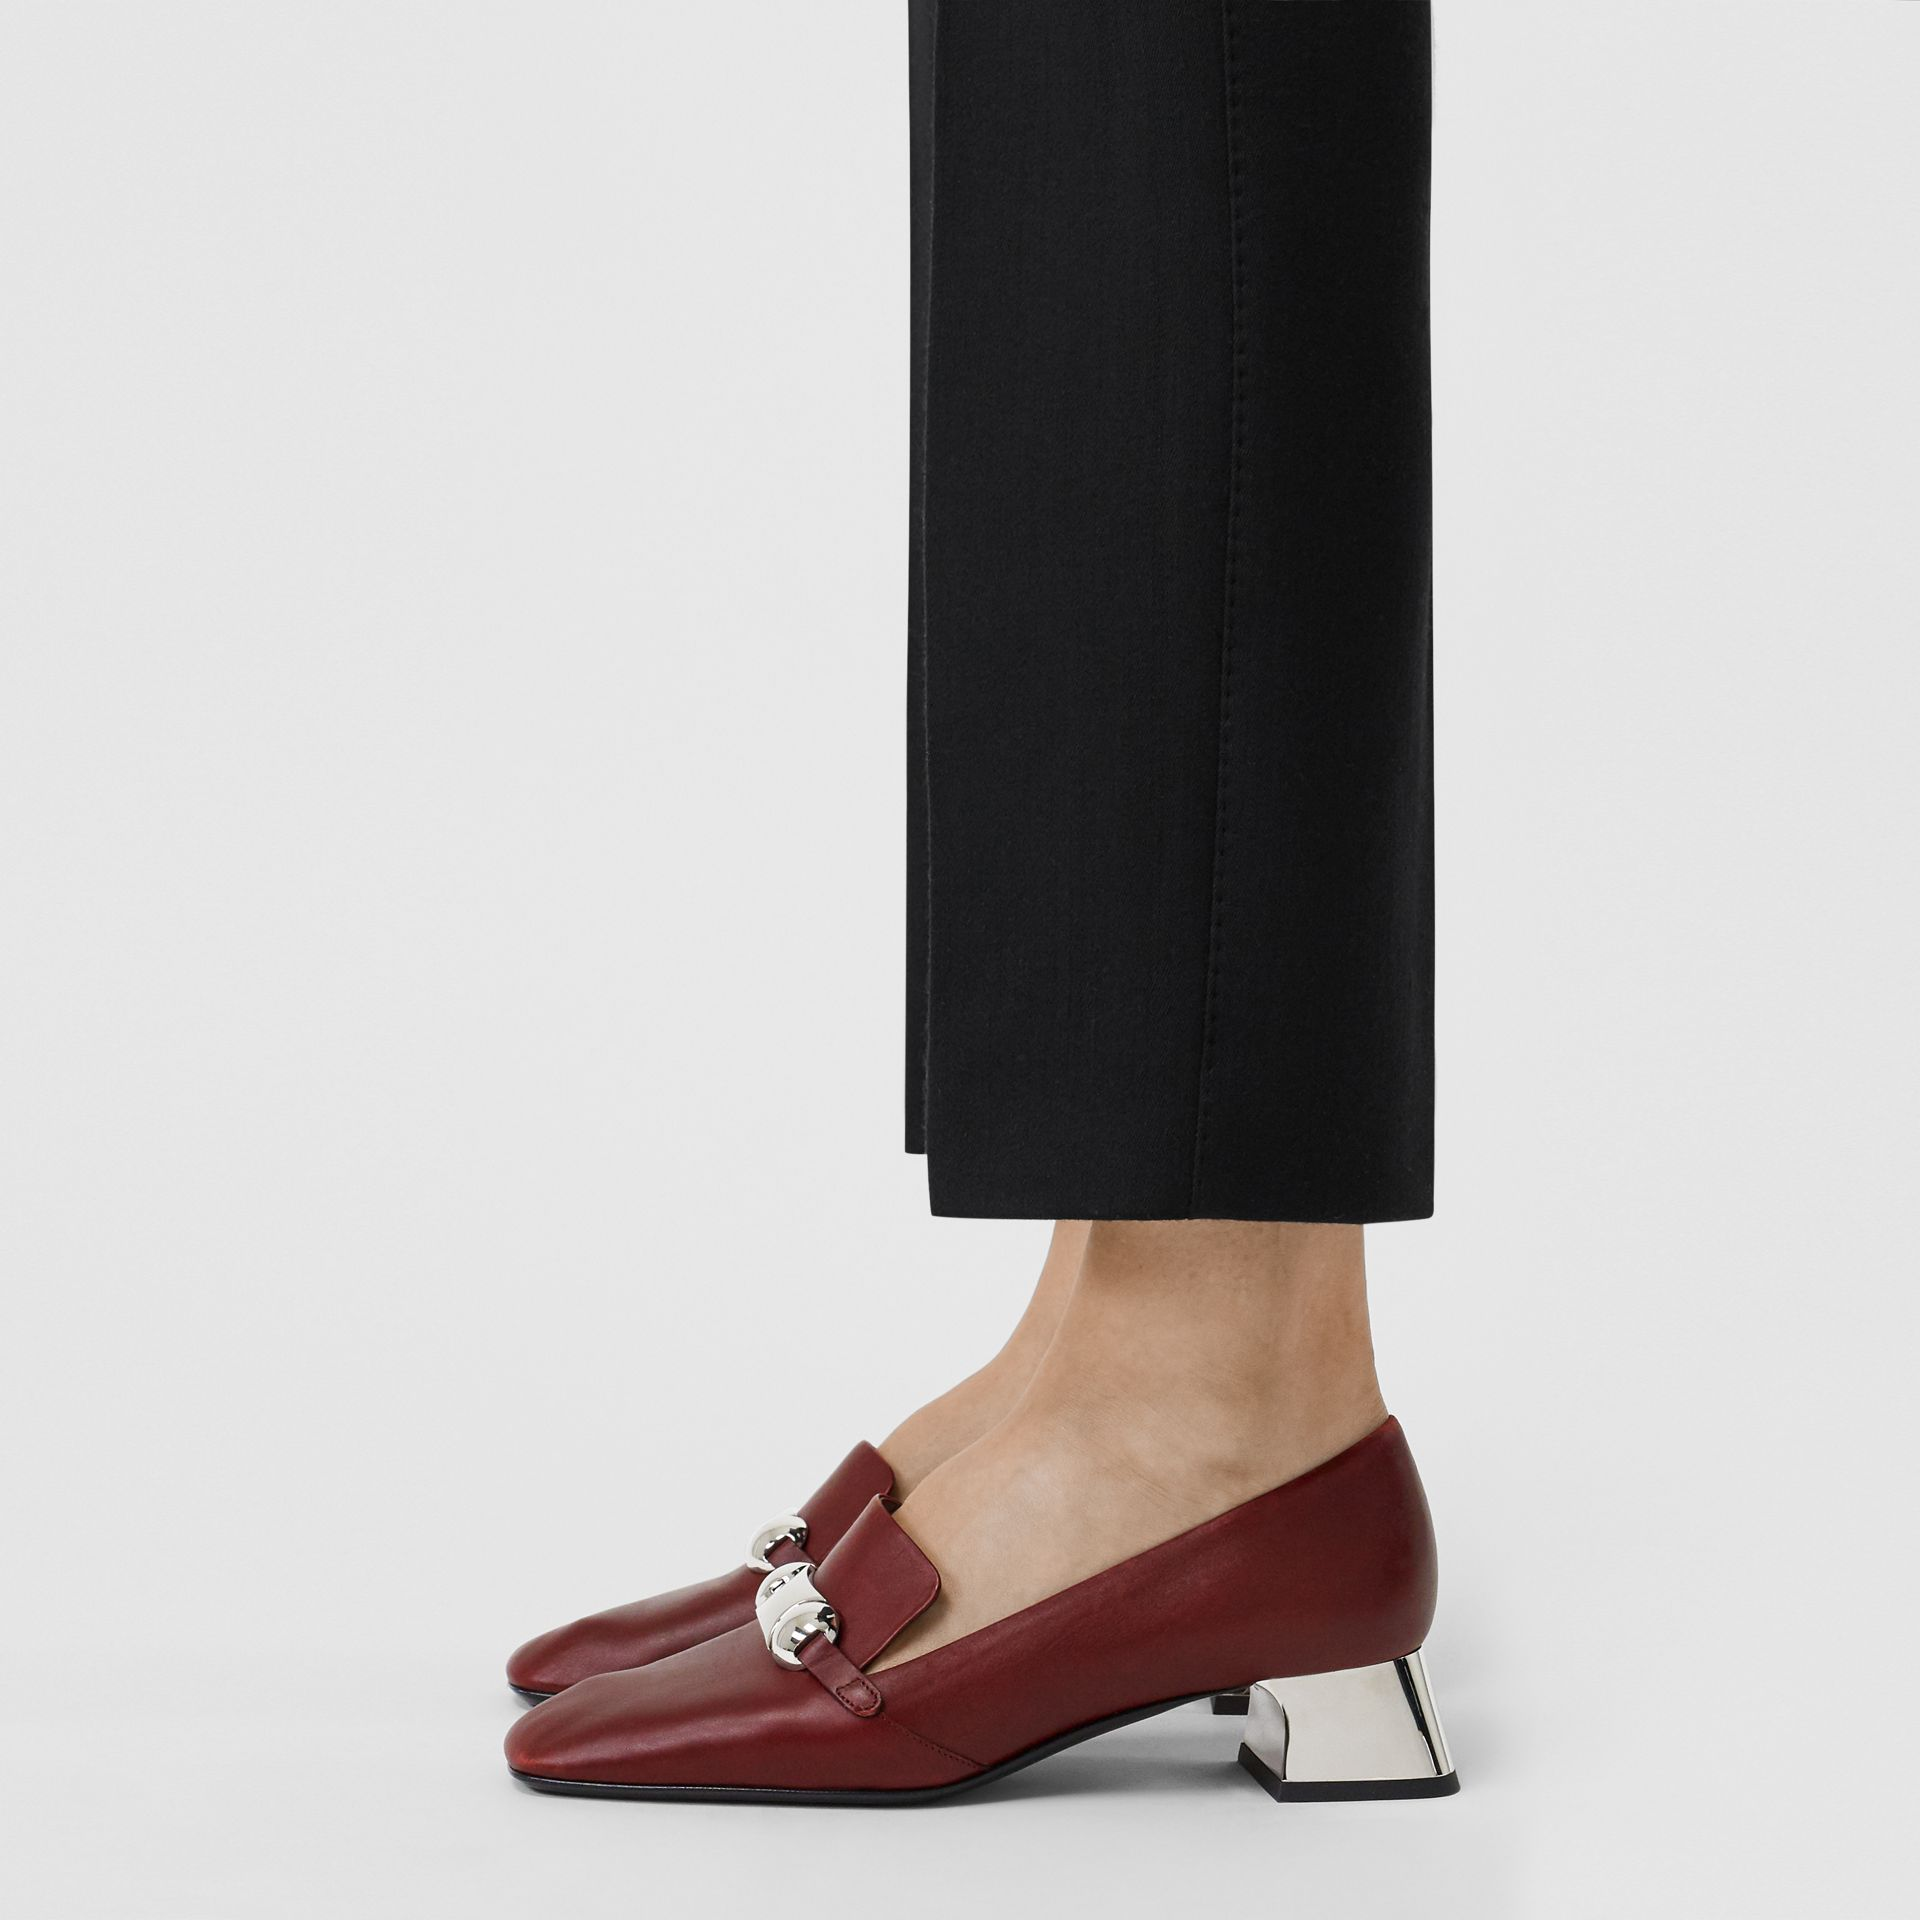 Studded Bar Detail Leather Pumps in Bordeaux - Women | Burberry - gallery image 2